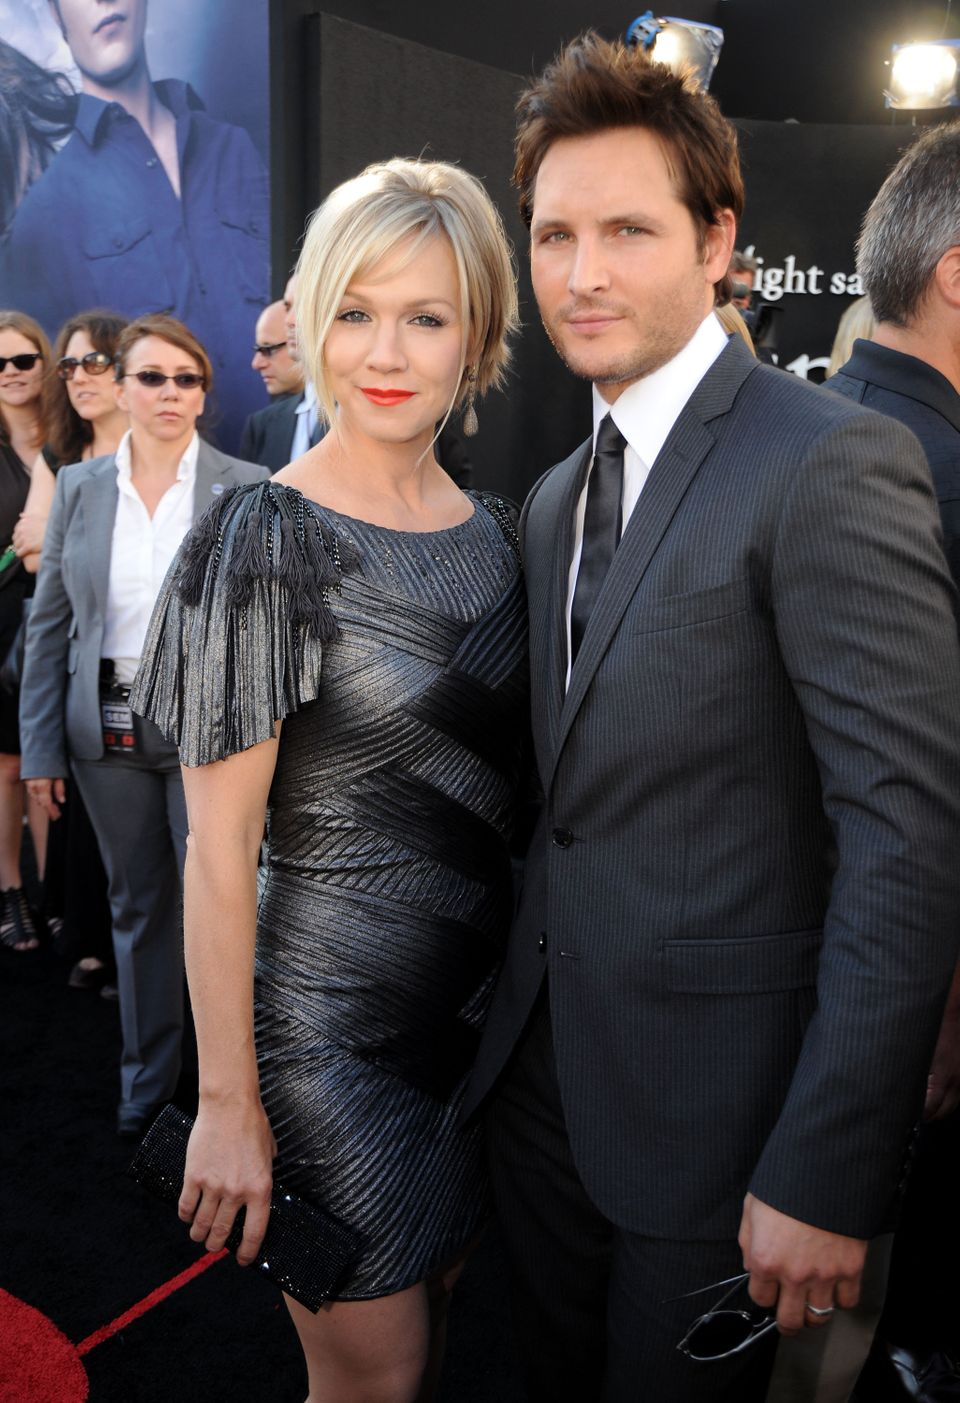 """Peter Facinelli and Jennie Garth were married for 11 years before their <a href=""""https://www.huffpost.com/entry/jennie-garth-"""